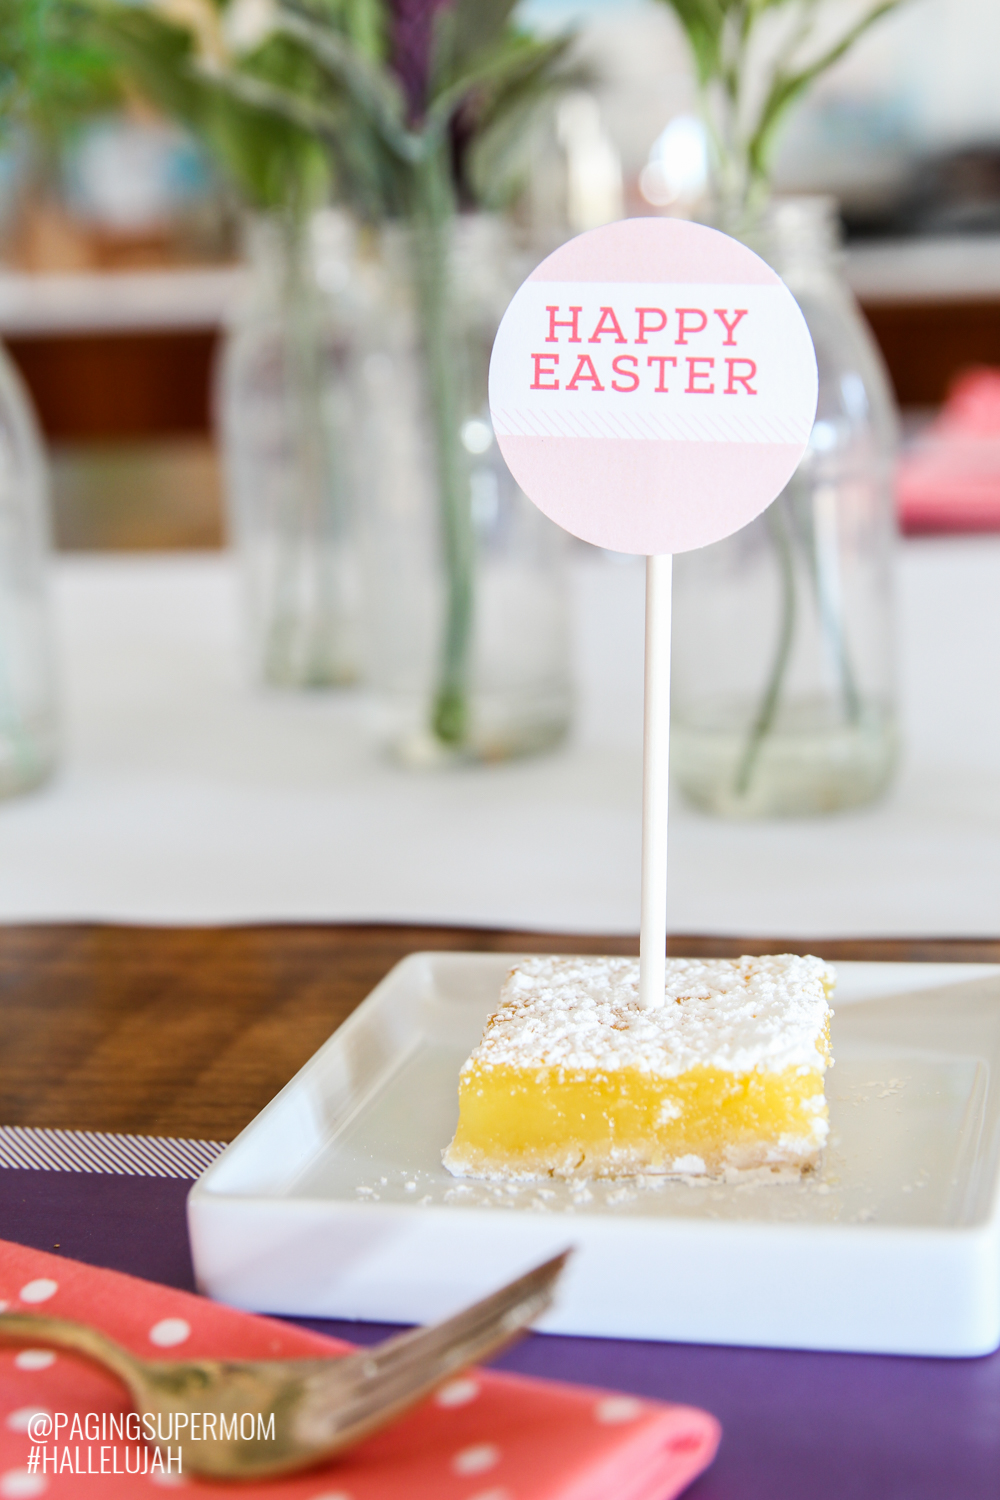 #Hallelujah Easter Dinner Ideas including free Printable Easter Decorations from @PagingSupermom